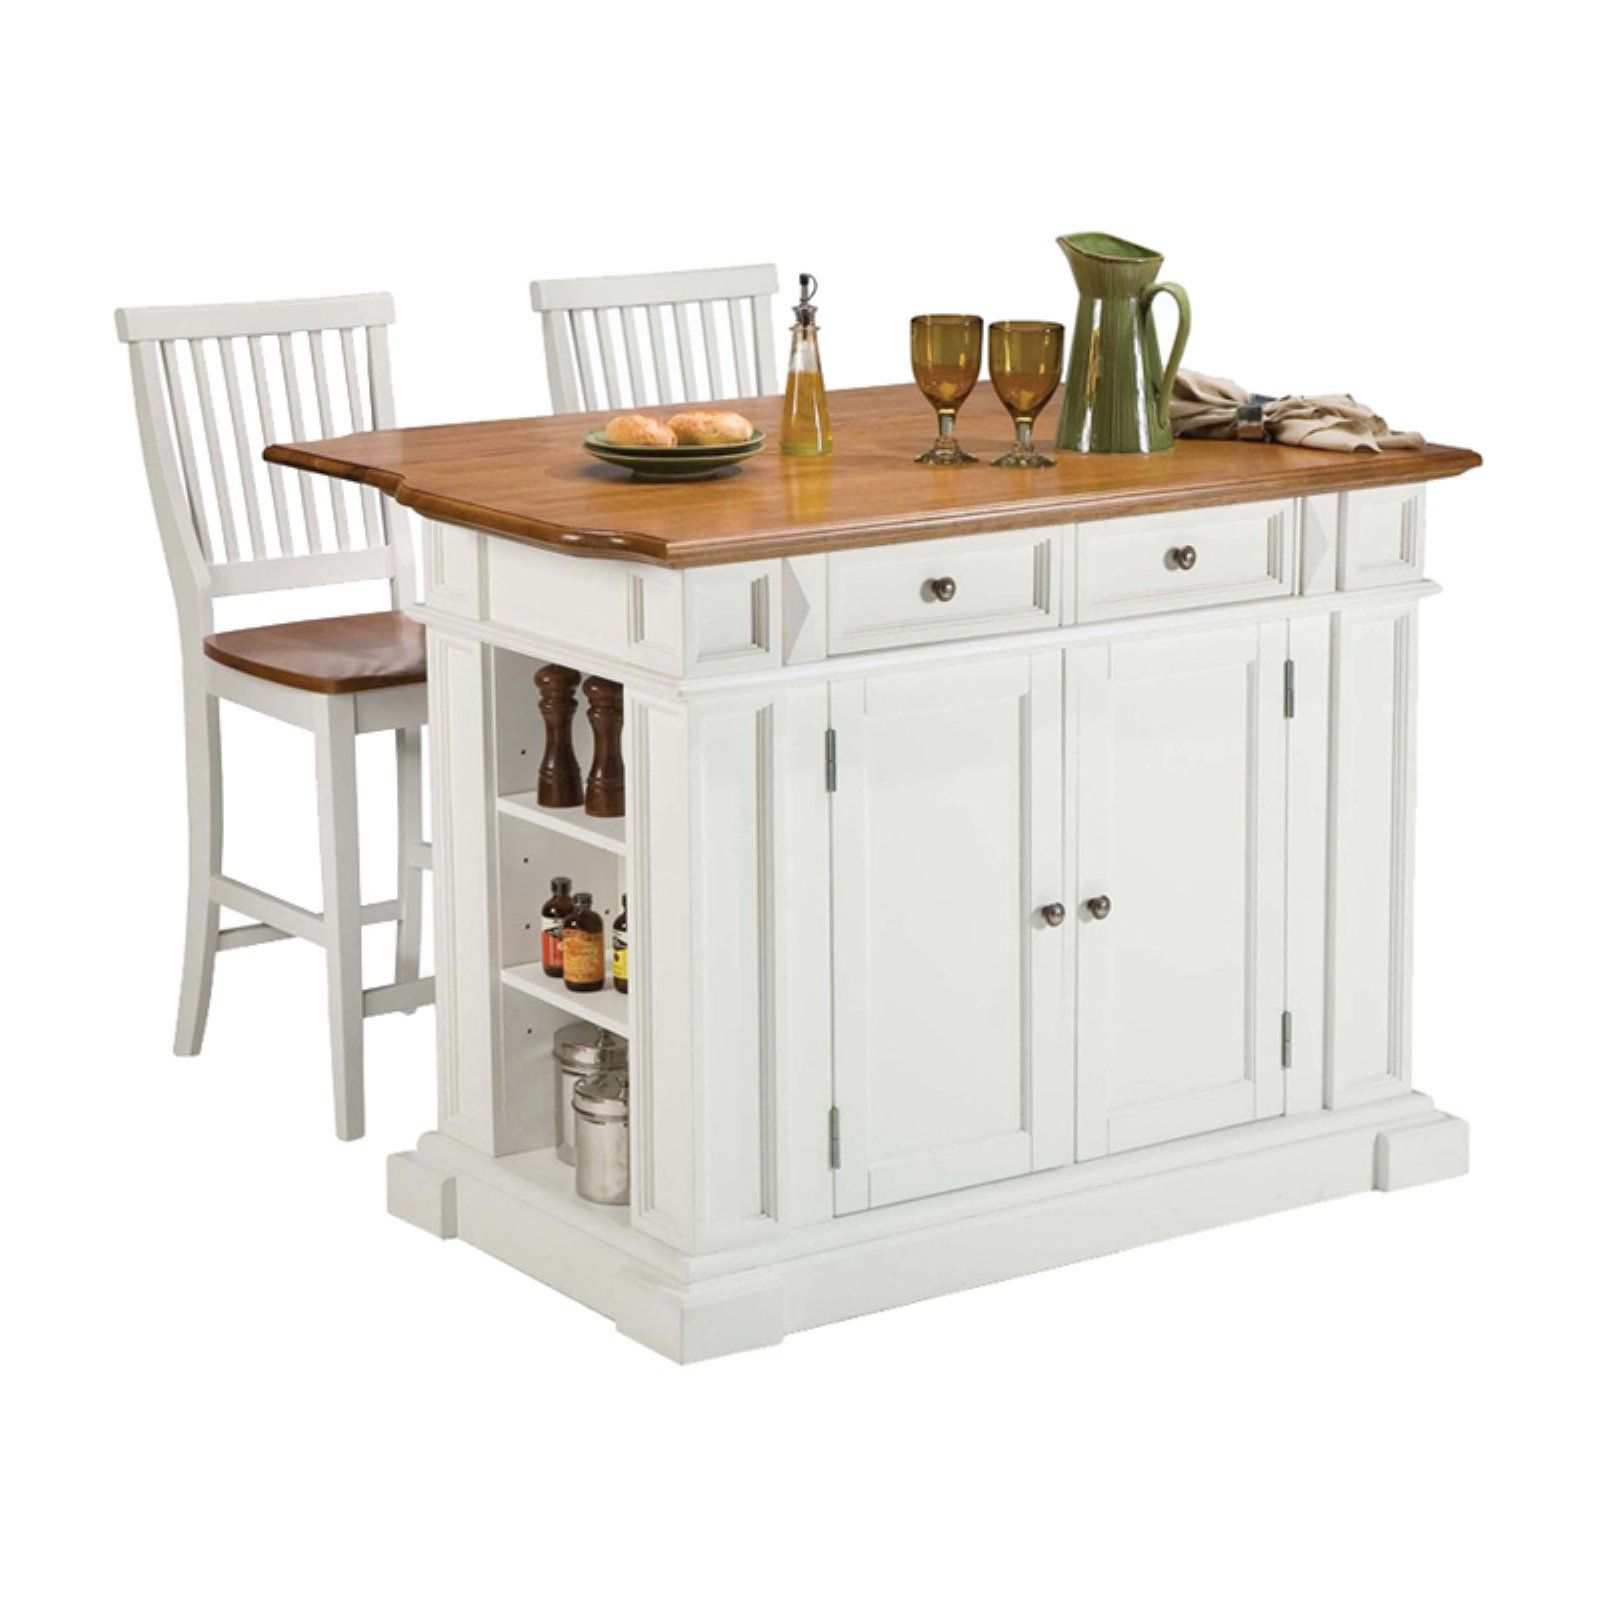 Home Styles Large Kitchen Island Set With 2 Stationary Stools Antique White Oak Portable Kitchen Island Chairs For Kitchen Island White Kitchen Island